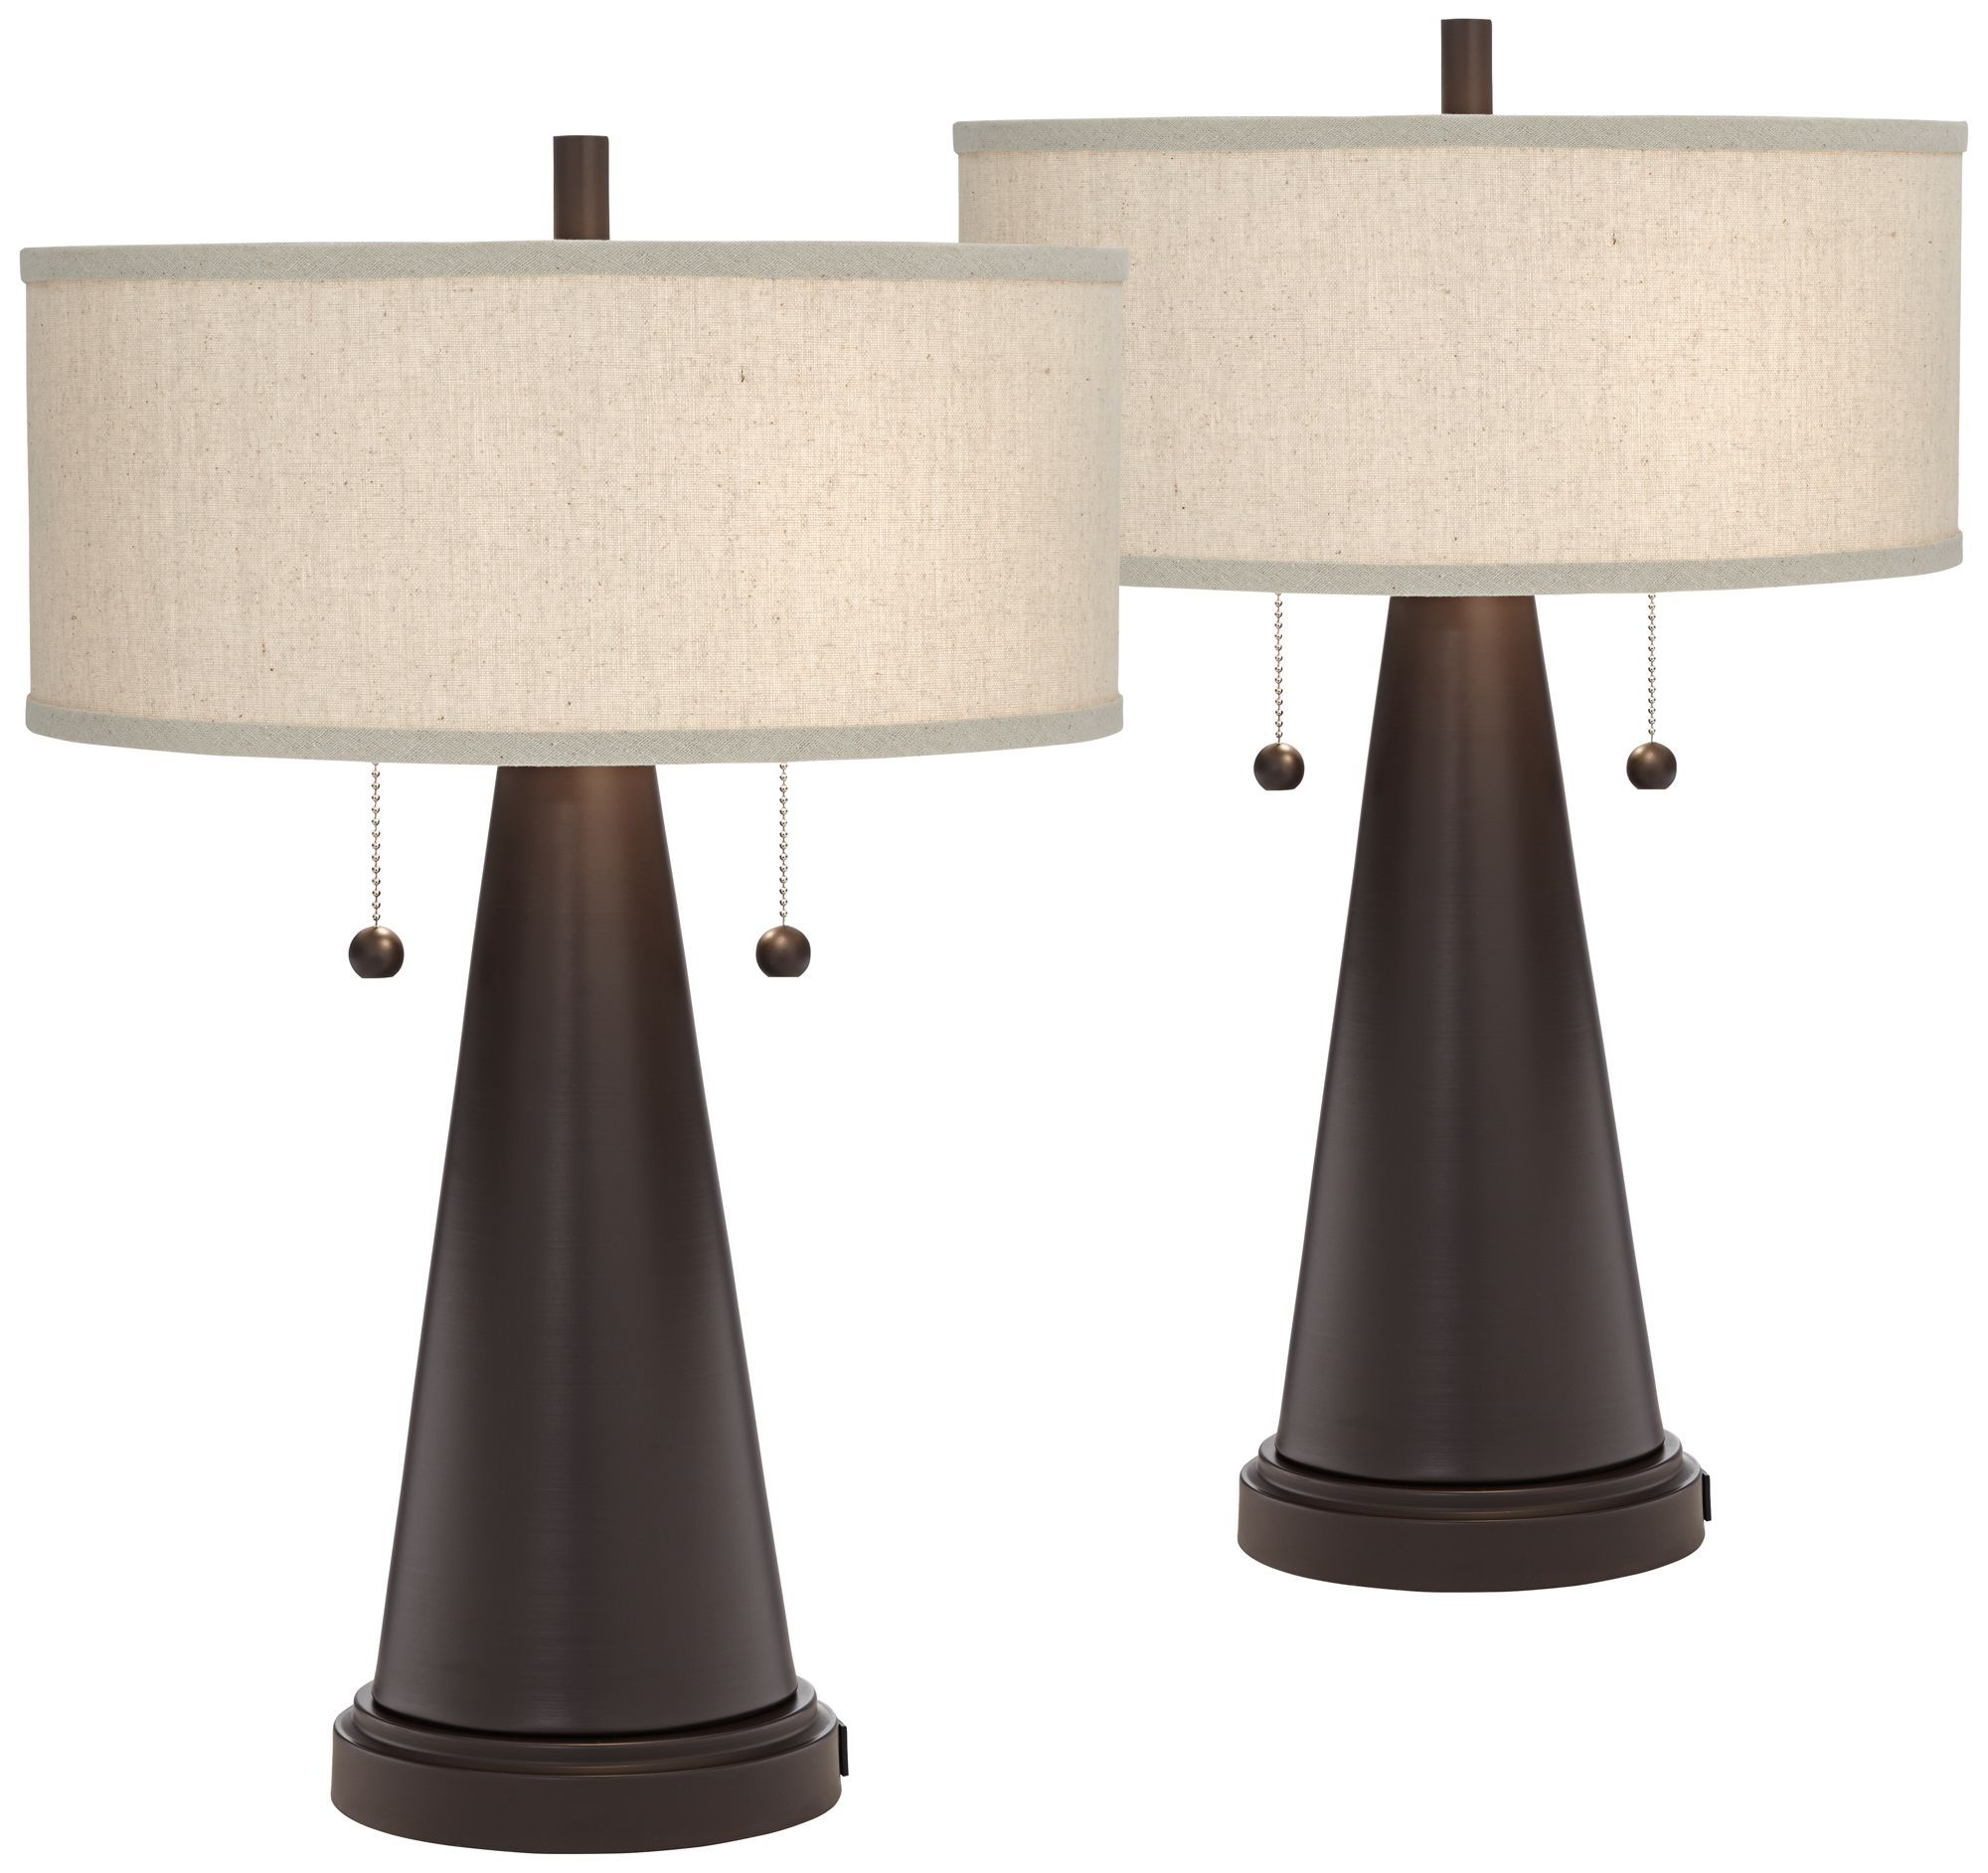 Home | Mid century modern accent table, Bronze table lamp ...